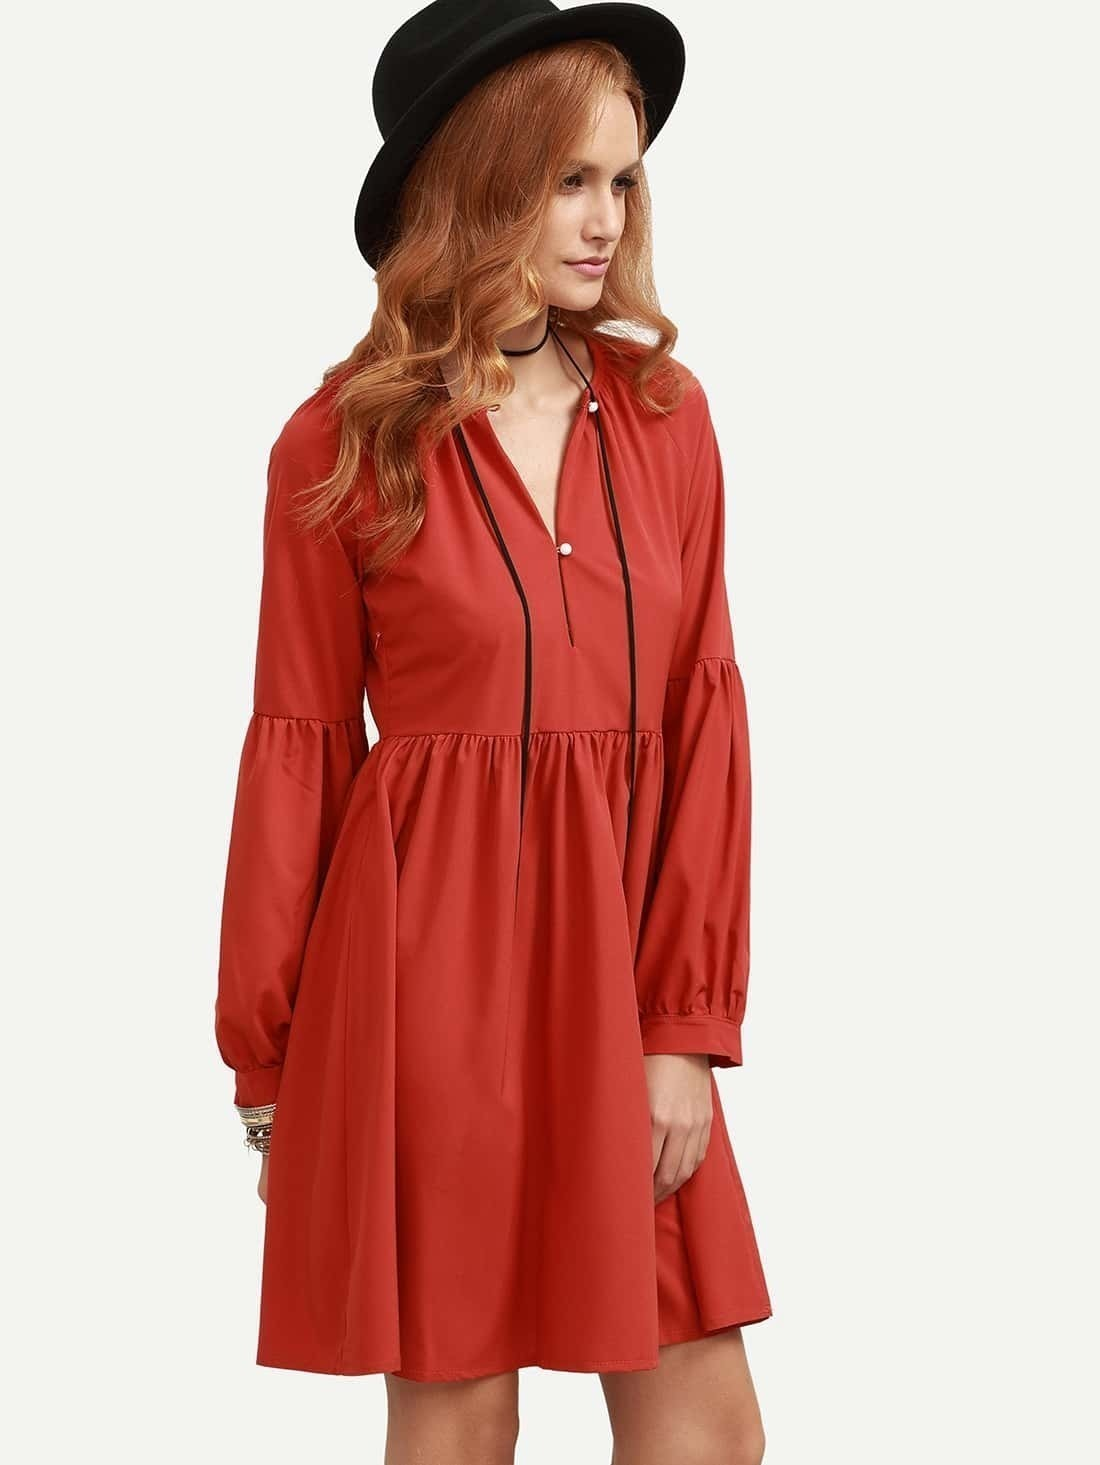 Robe evasee manche bouffante rouge french romwe for Robe rouge évasée